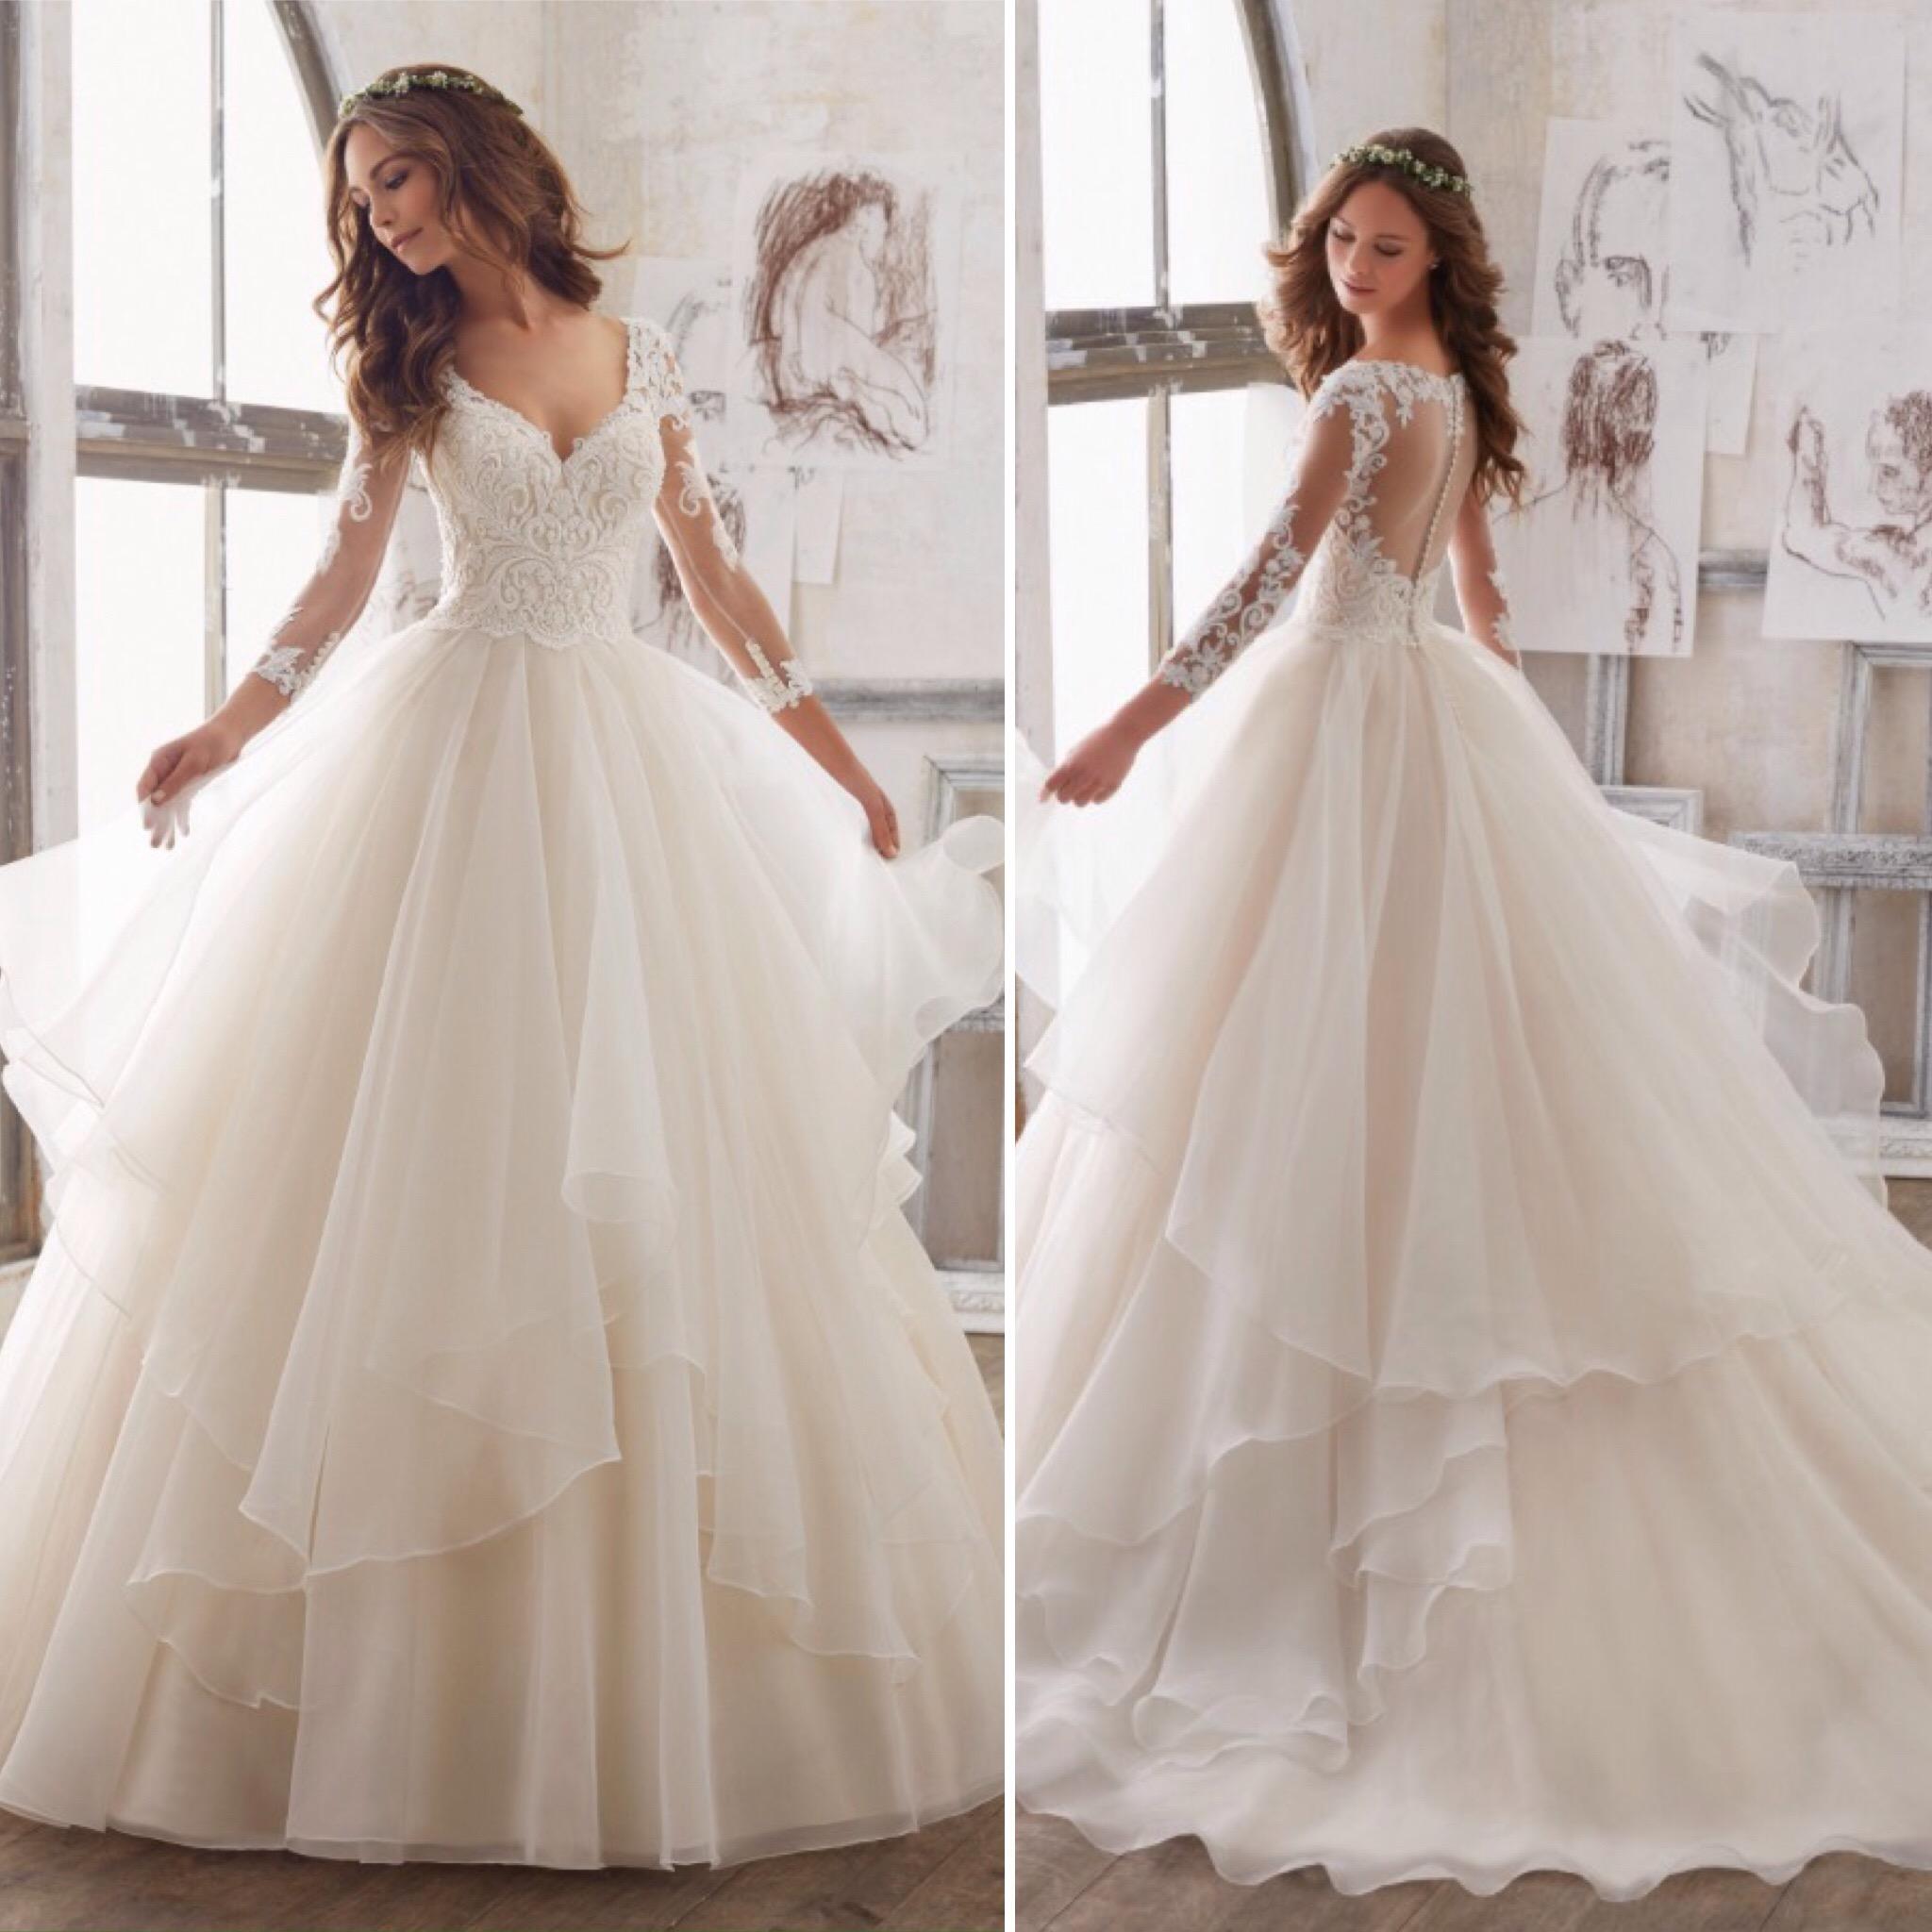 Affordable Wedding Dresses For Less Than $1500 In 2017 At